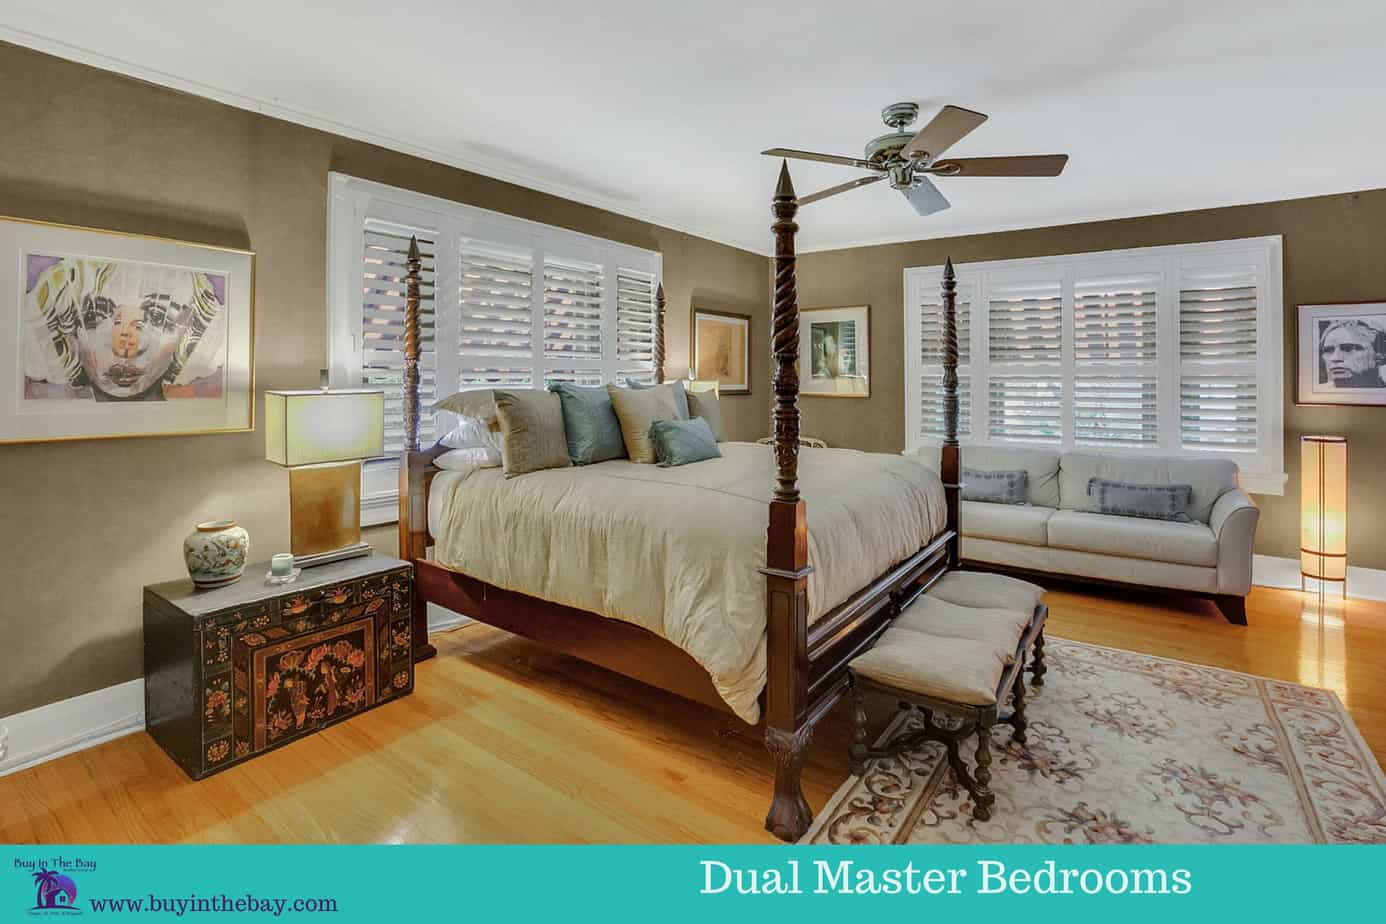 Image of master bedroom with two windows, king size bed, wood floors, and a ceiling fan for the home at 4024 W Bay to Bay Boulevard Tampa FL 33629 a great example of a Historic Homes in Florida and a Tampa Bay Luxury Homes For sale.